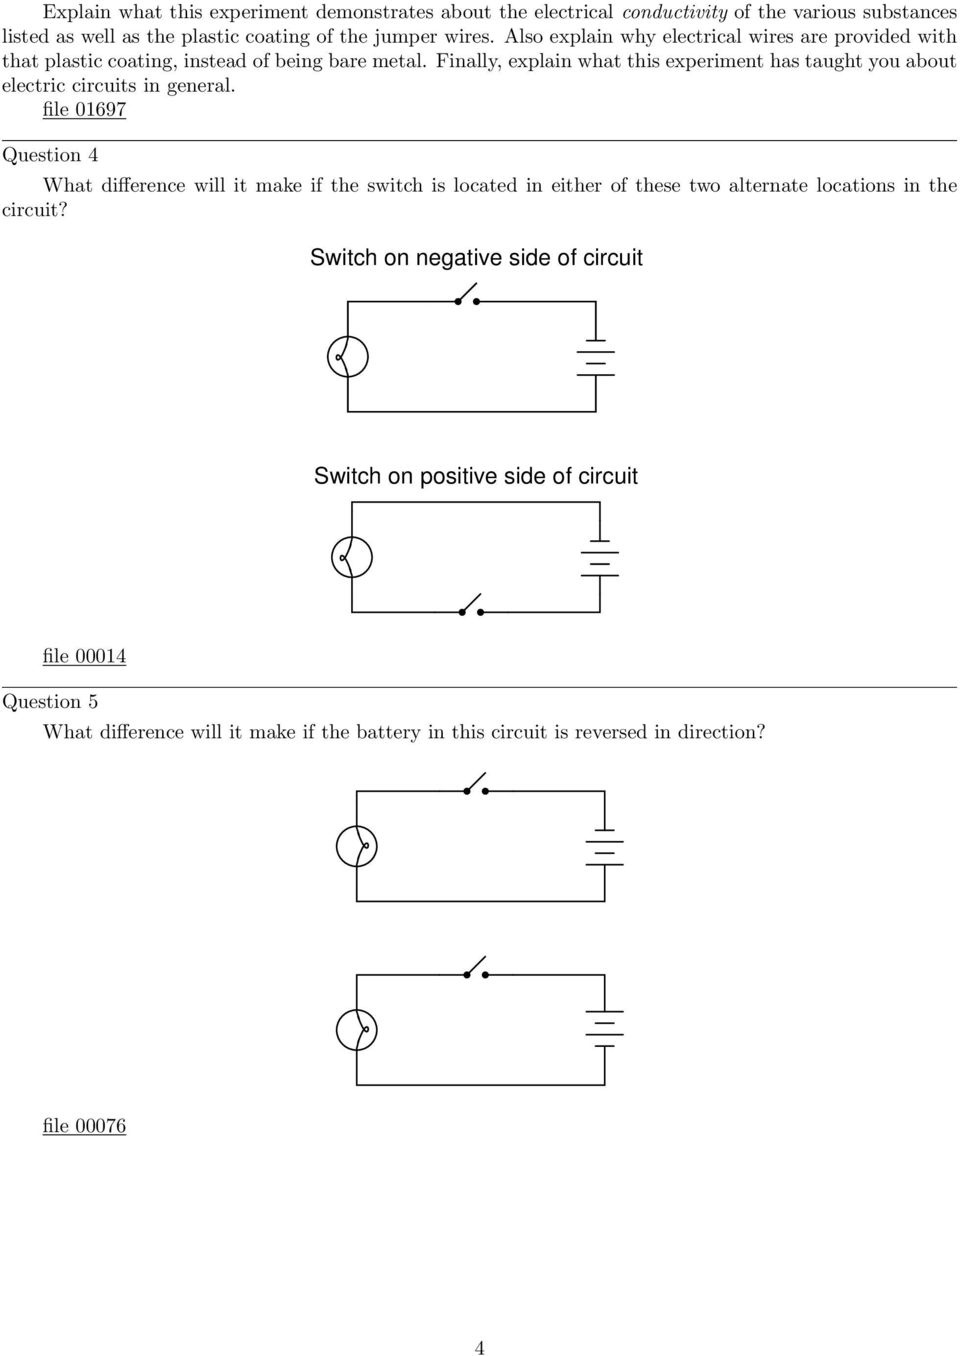 Simple Circuits Worksheet Pdf Spst And Ptm Switch Finally Explain What This Experiment Has Taught You About Electric In General